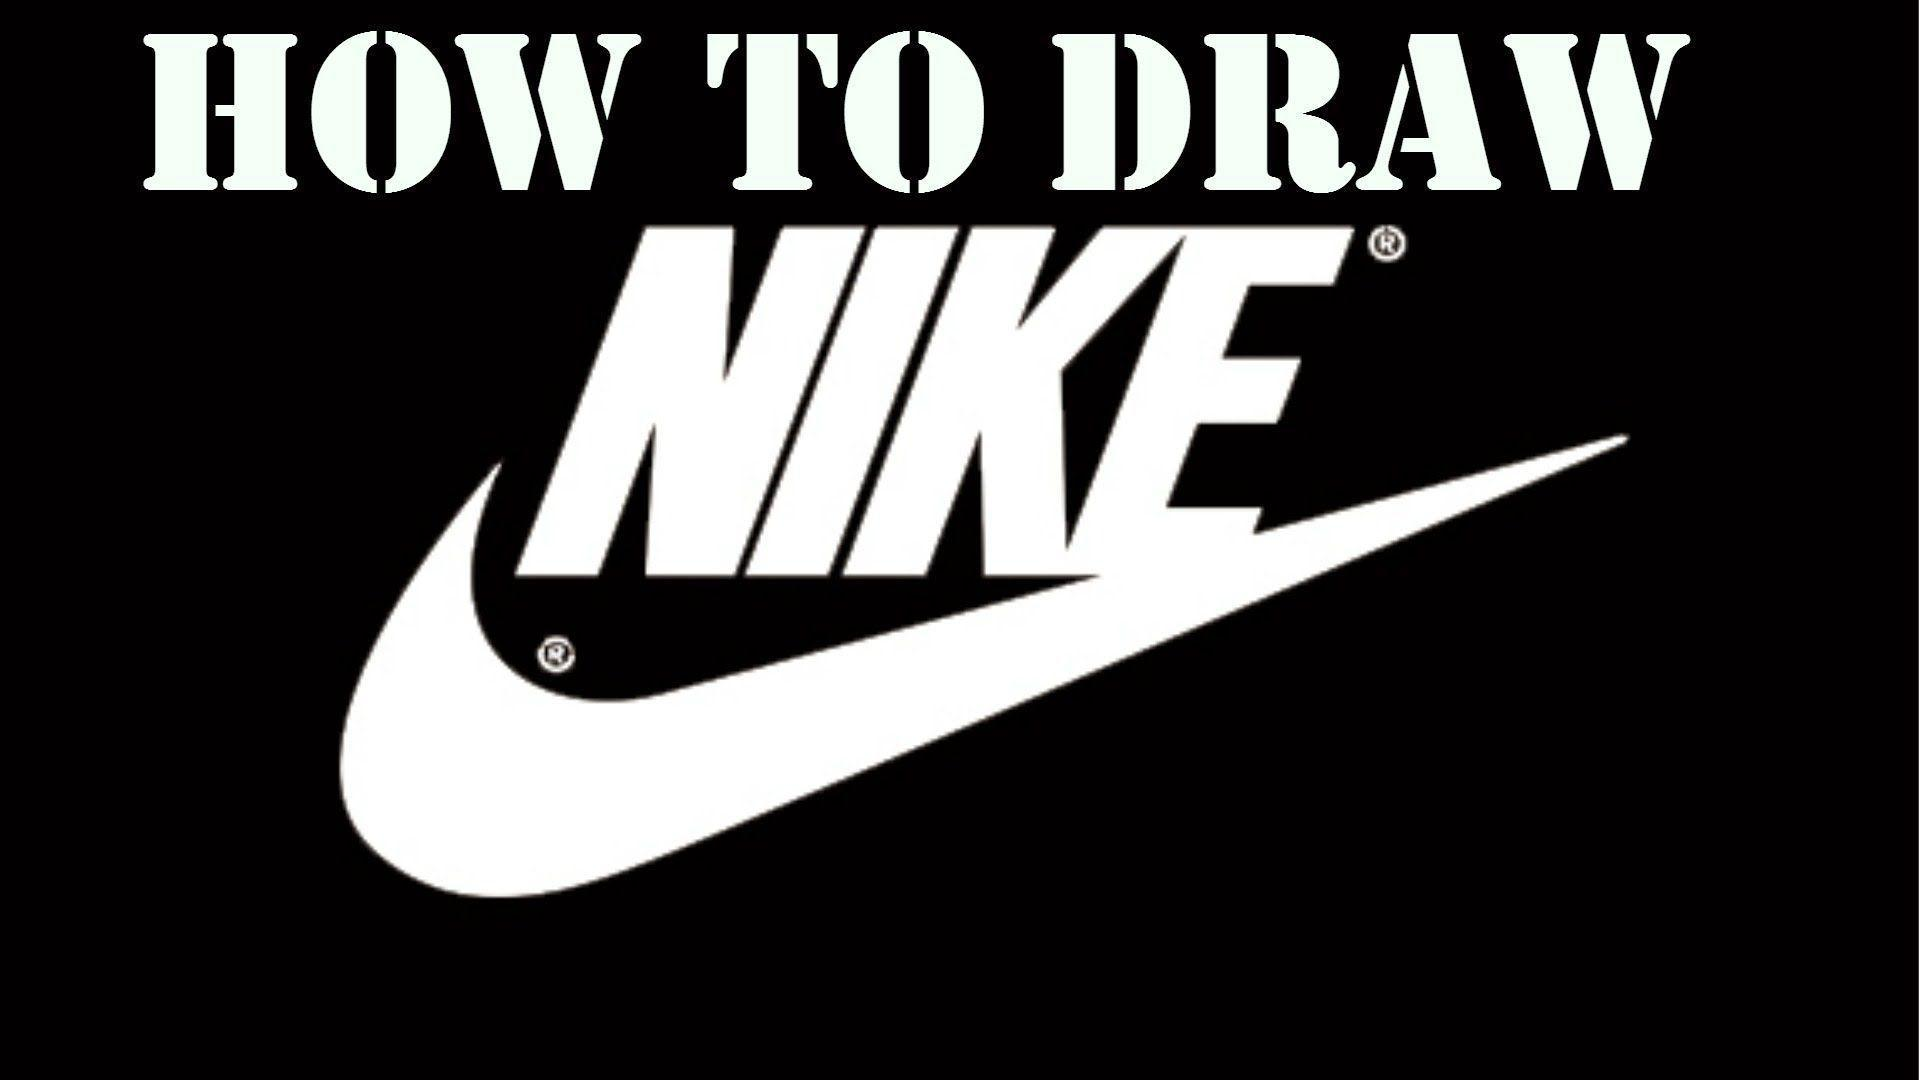 How to draw the nike logo! - YouTube